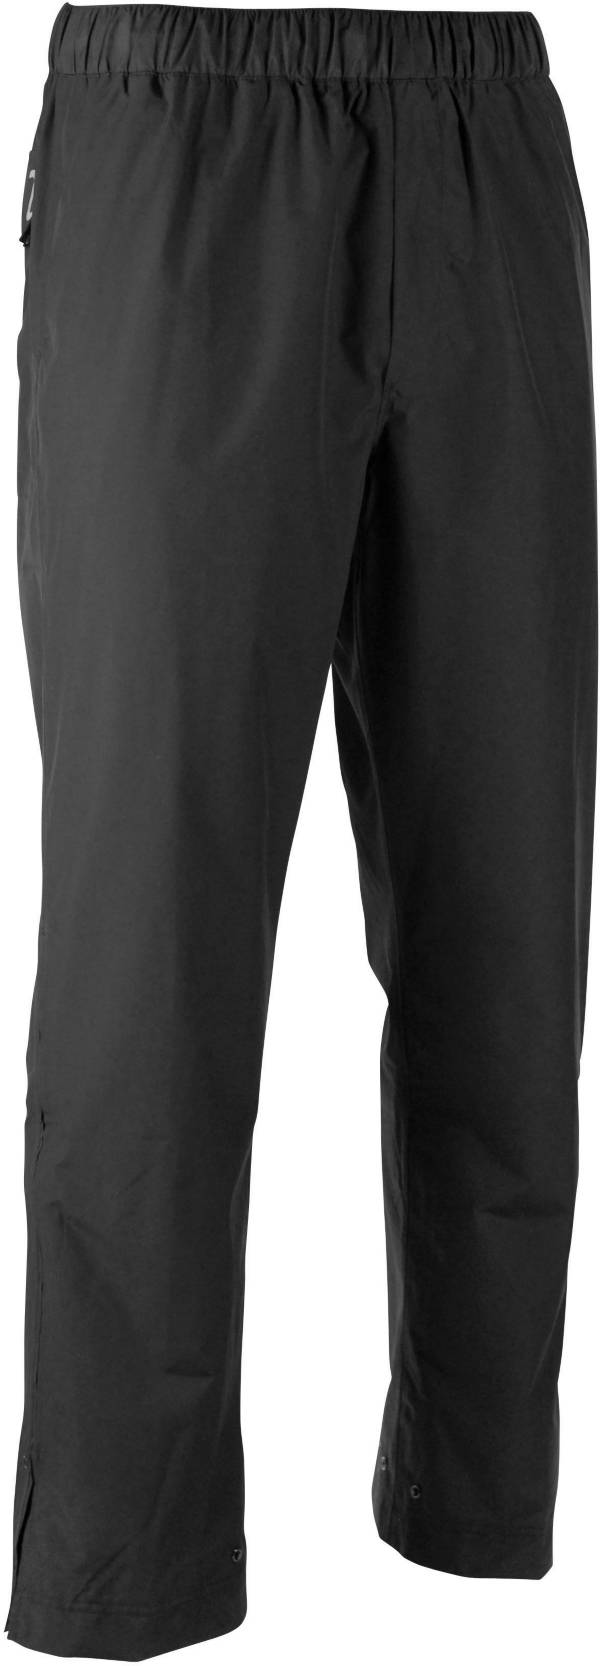 Zero Restriction Men's Packable Golf Pants product image